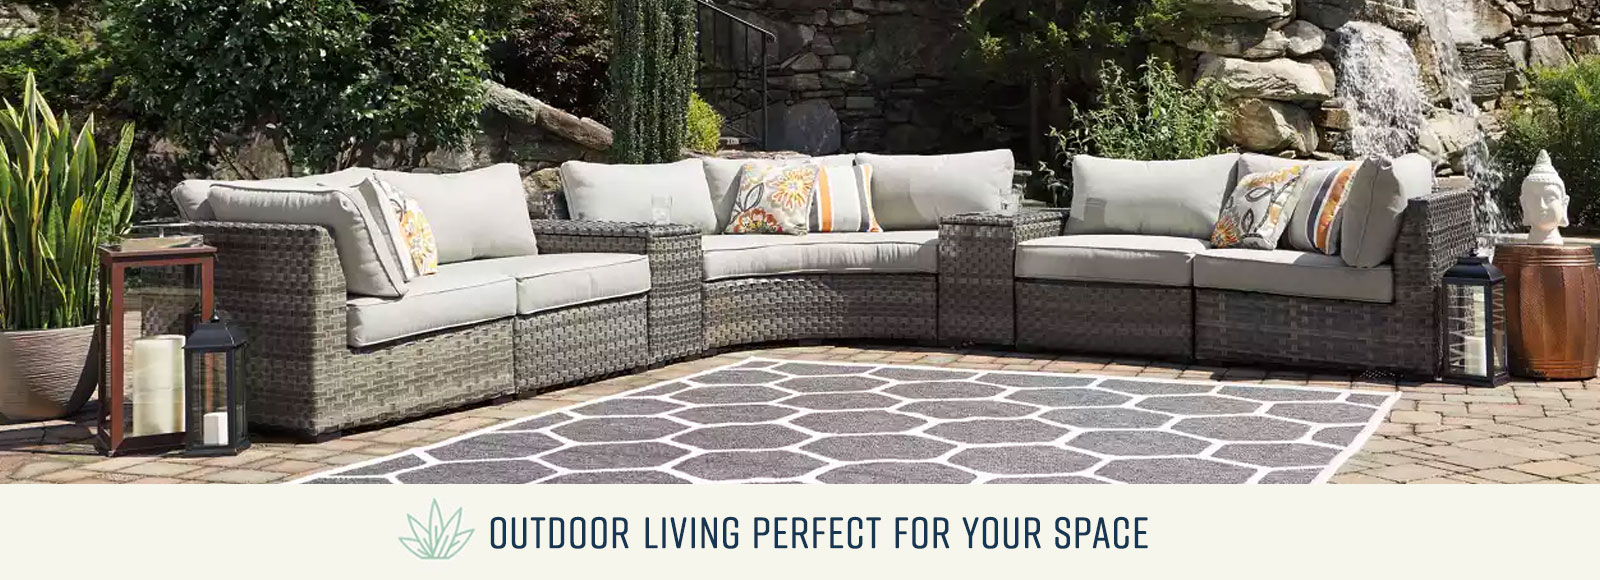 Outdoor Living Perfect for your Space